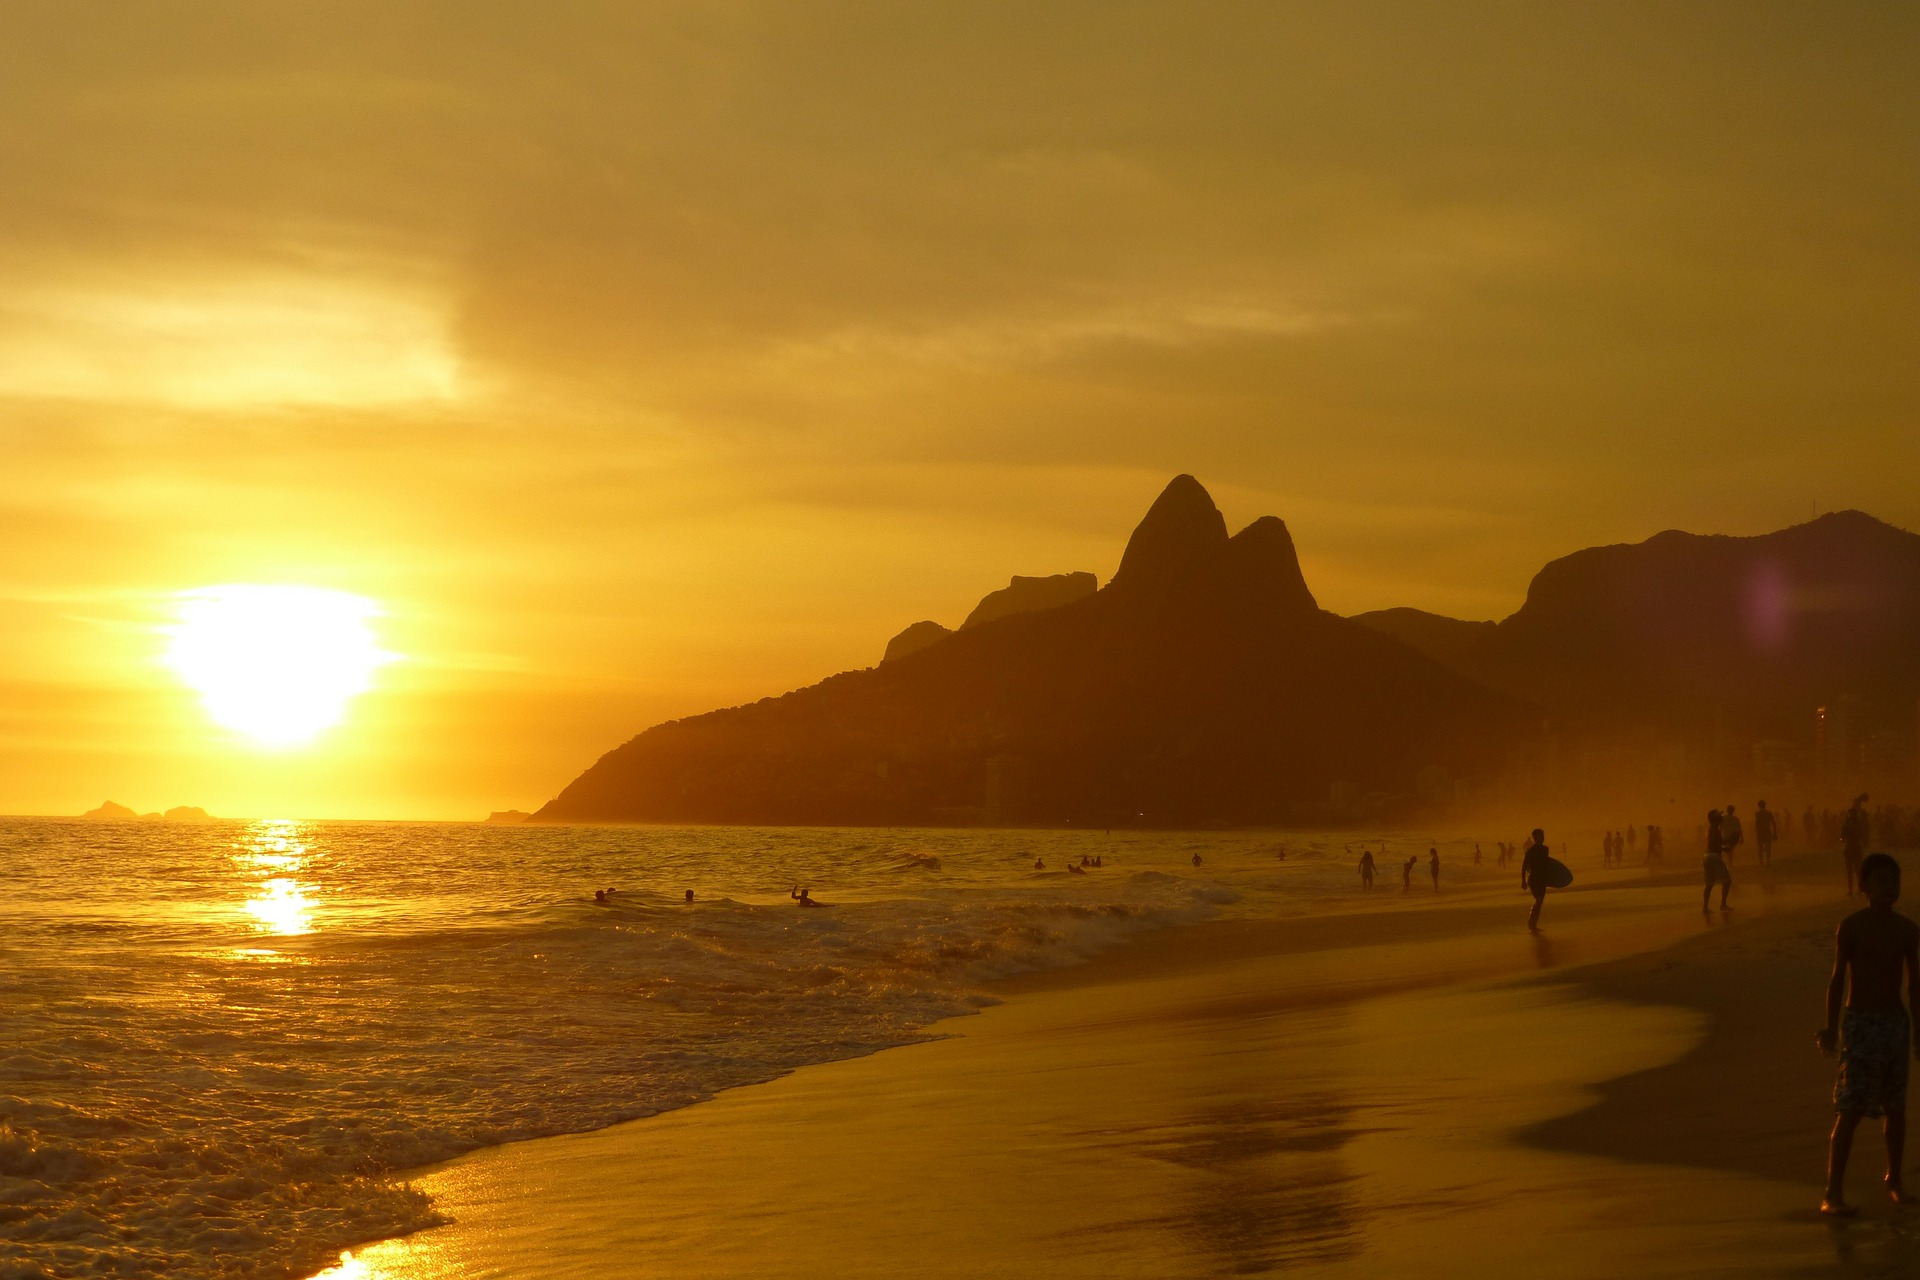 SEE: IPANEMA BEACH